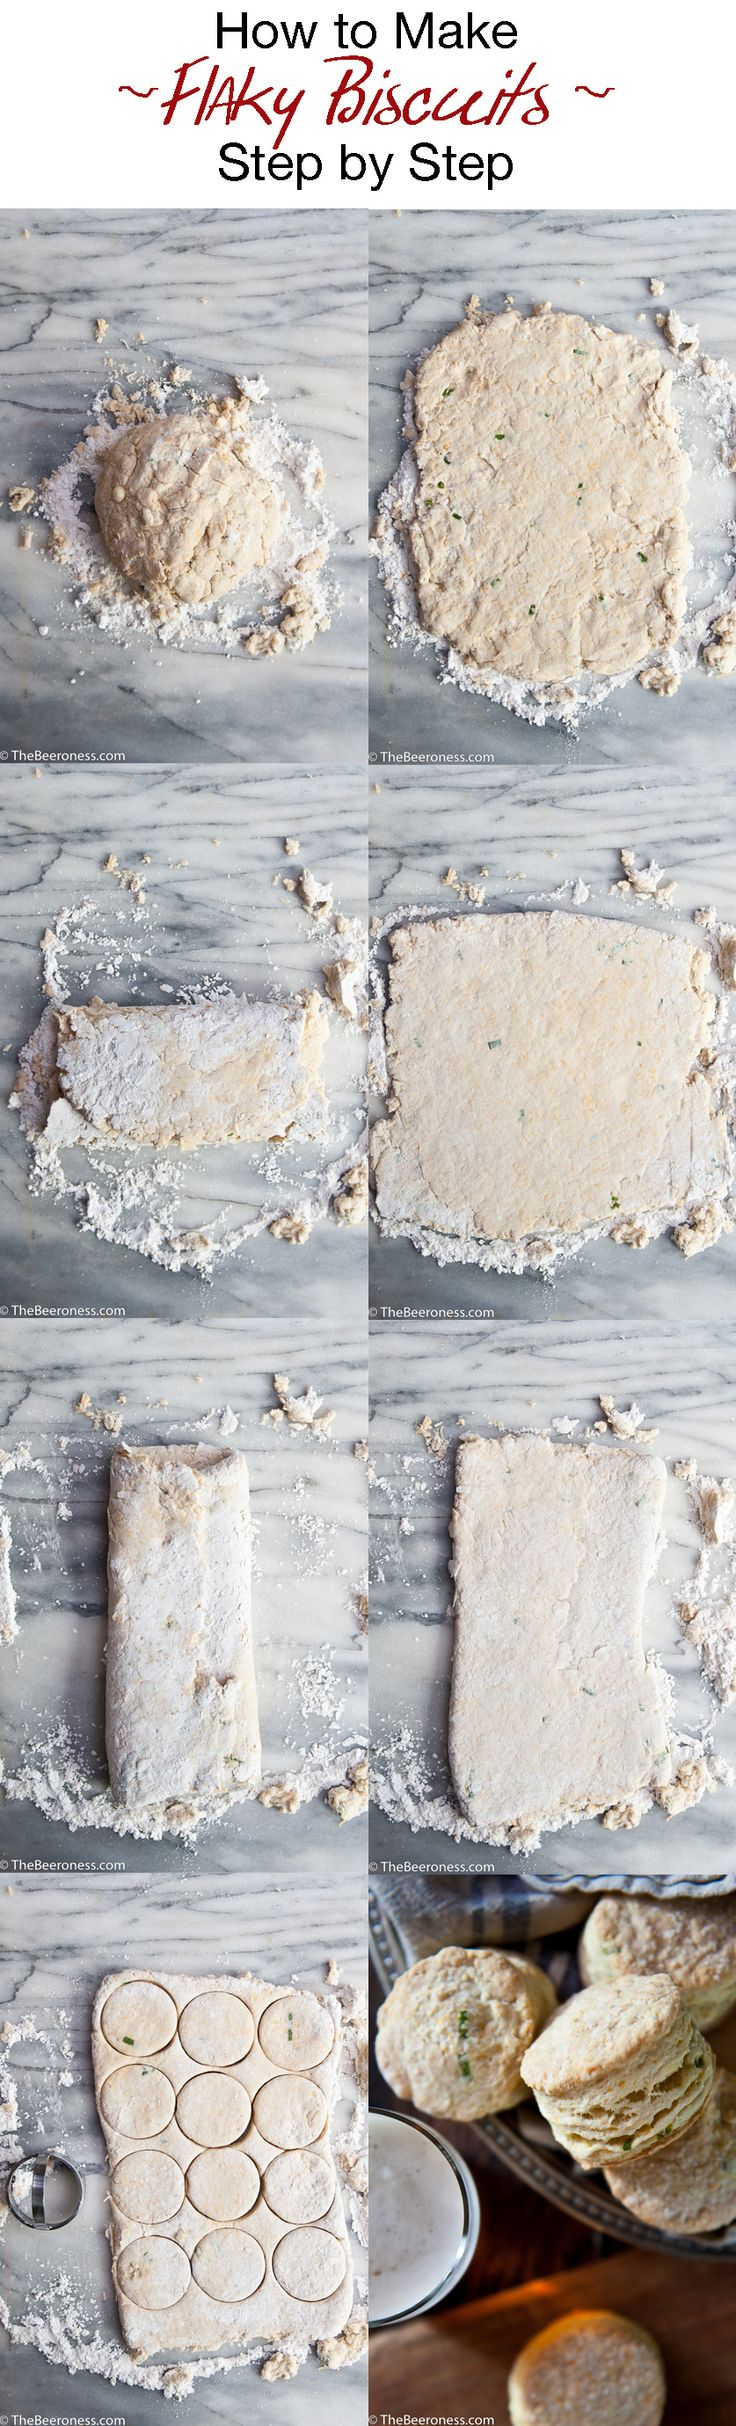 How To Make Flaky Biscuits Step by Step